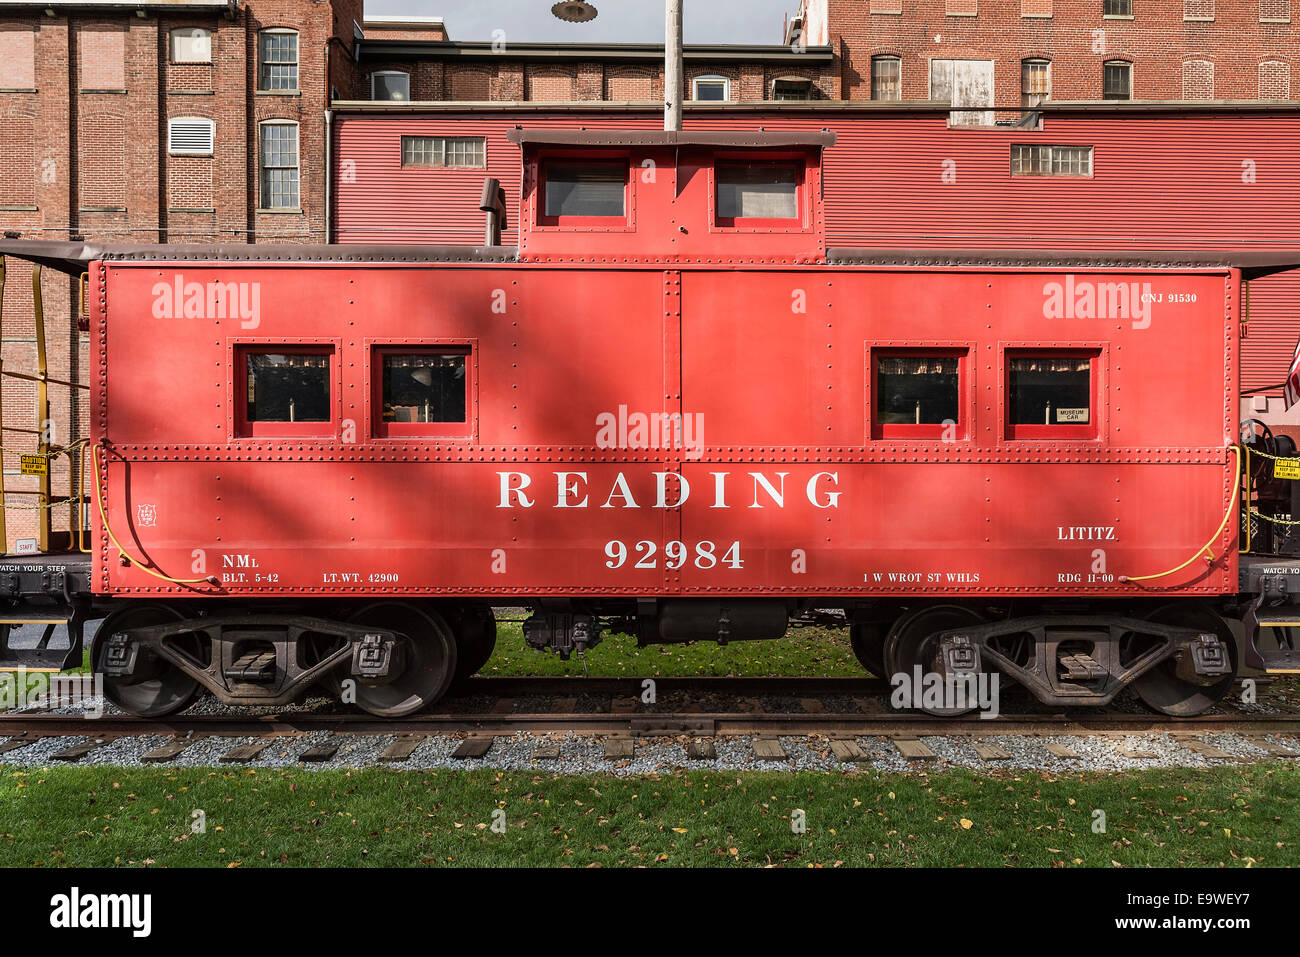 Historic reading Railroad train car, Lititz, Pennsylvania, USA - Stock Image